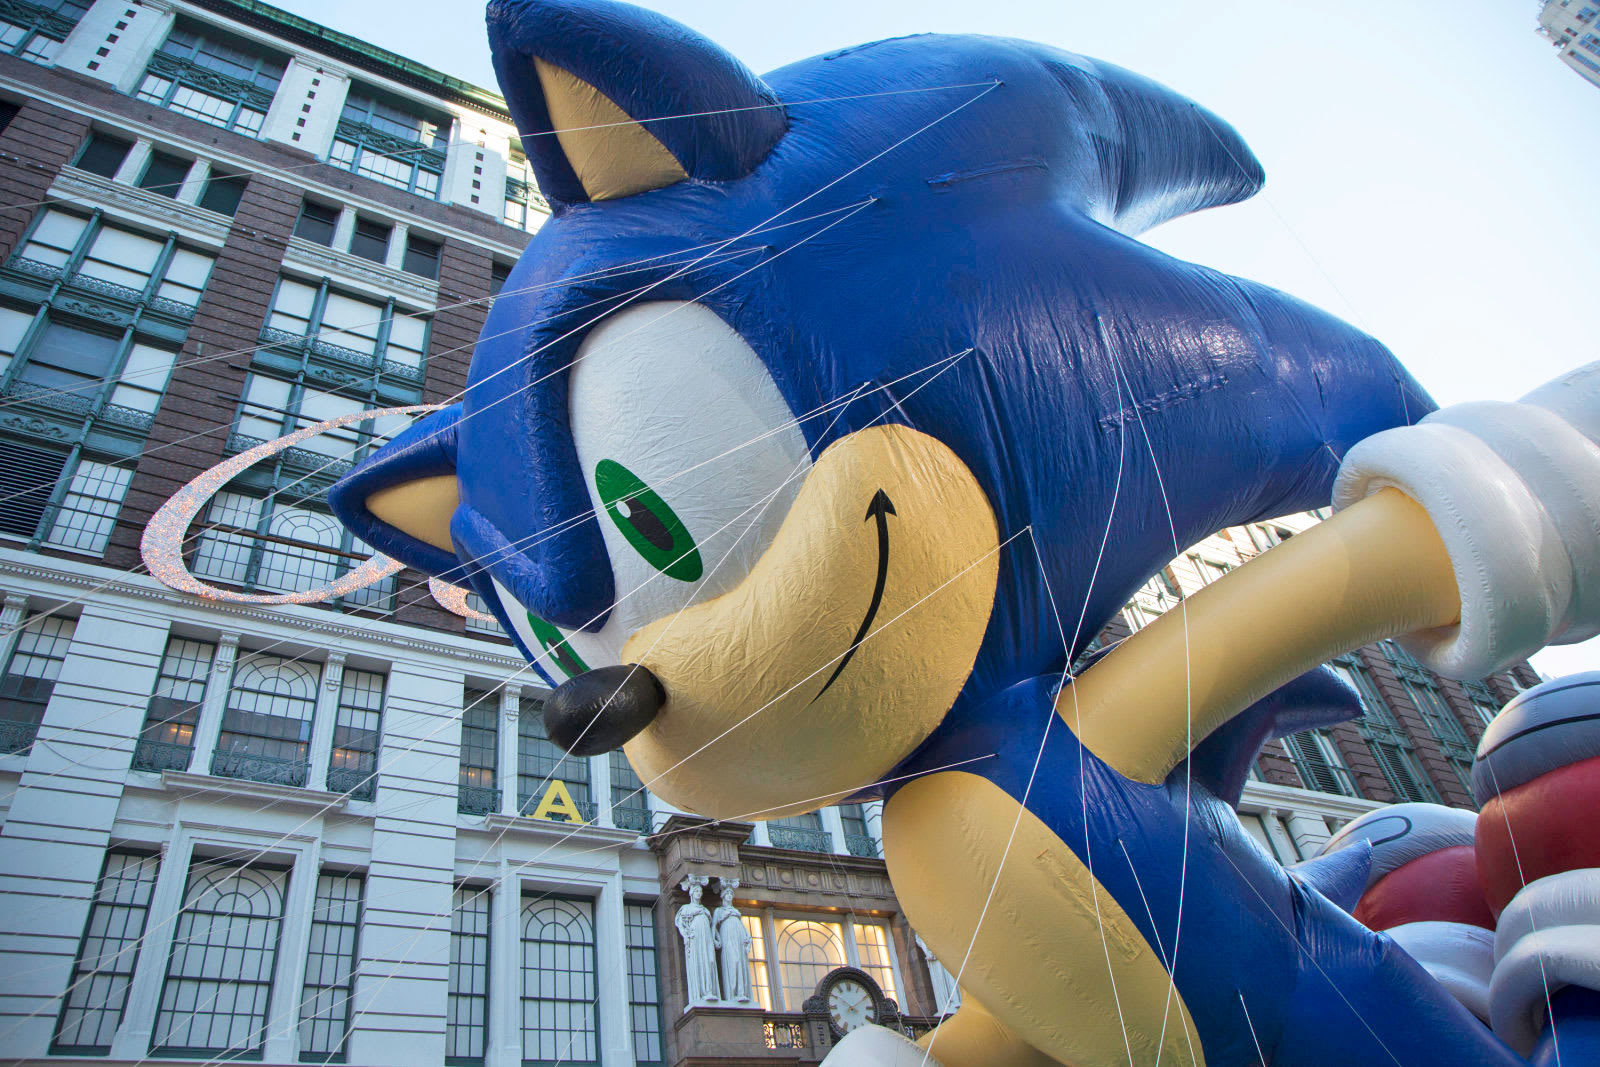 Sonic the Hedgehog' and other Sega classics are coming to